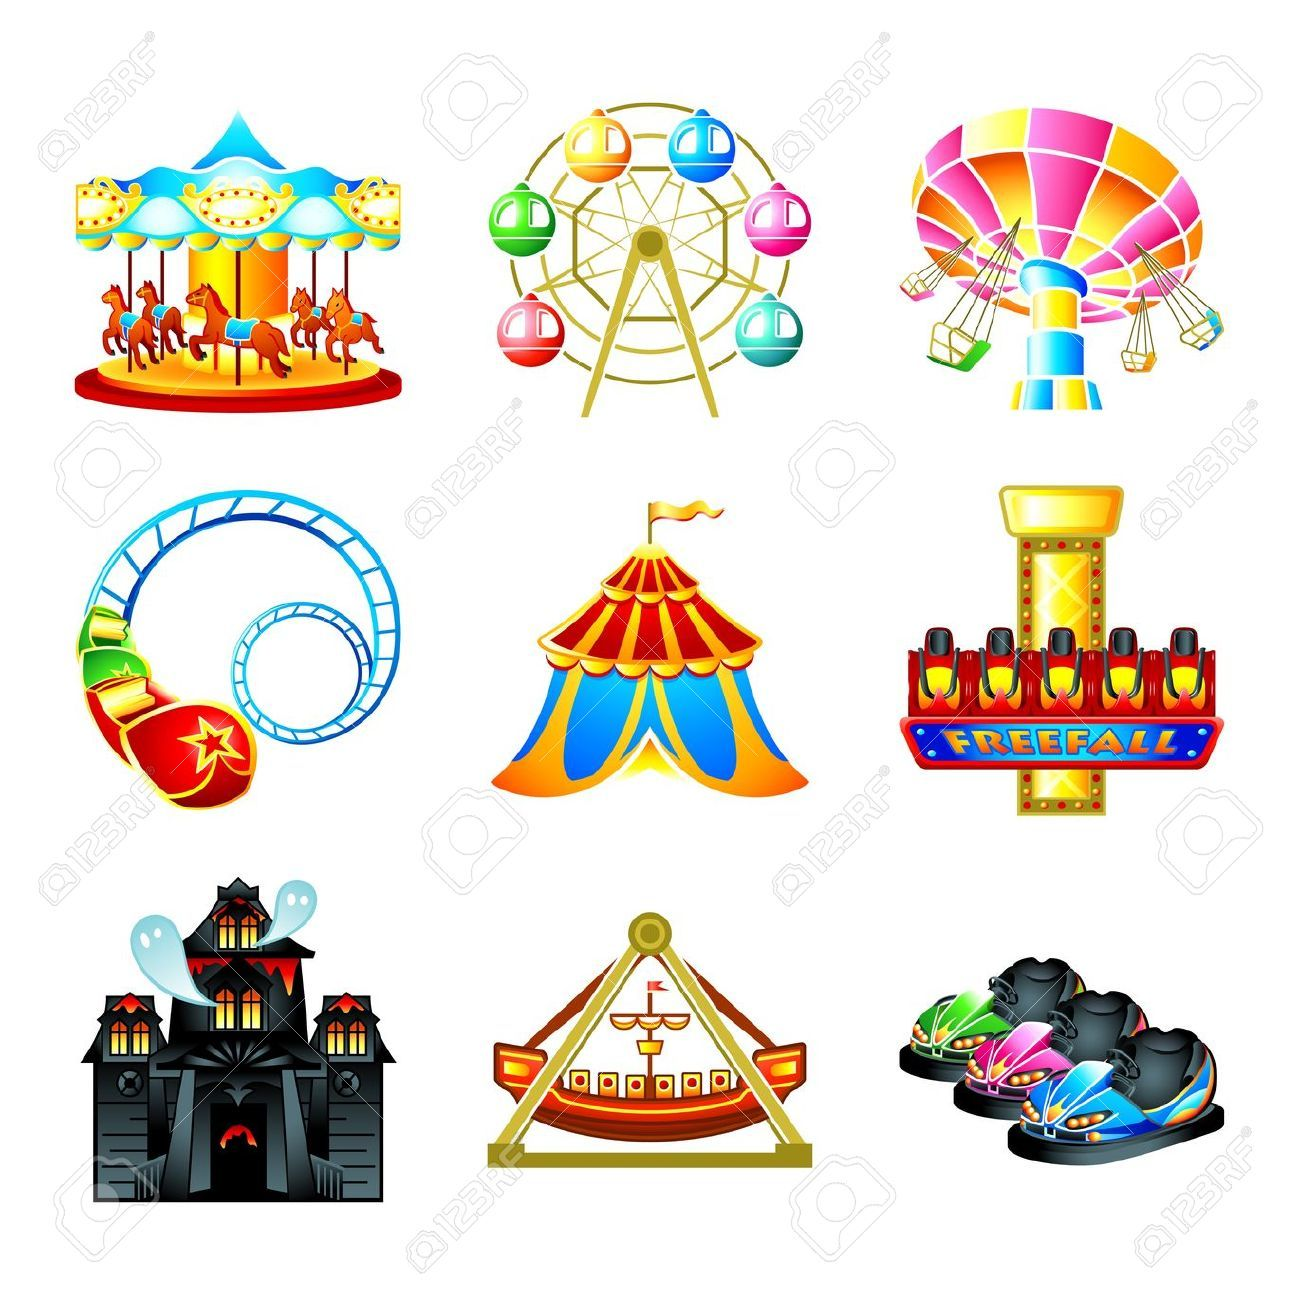 images of theme park rides Google Search